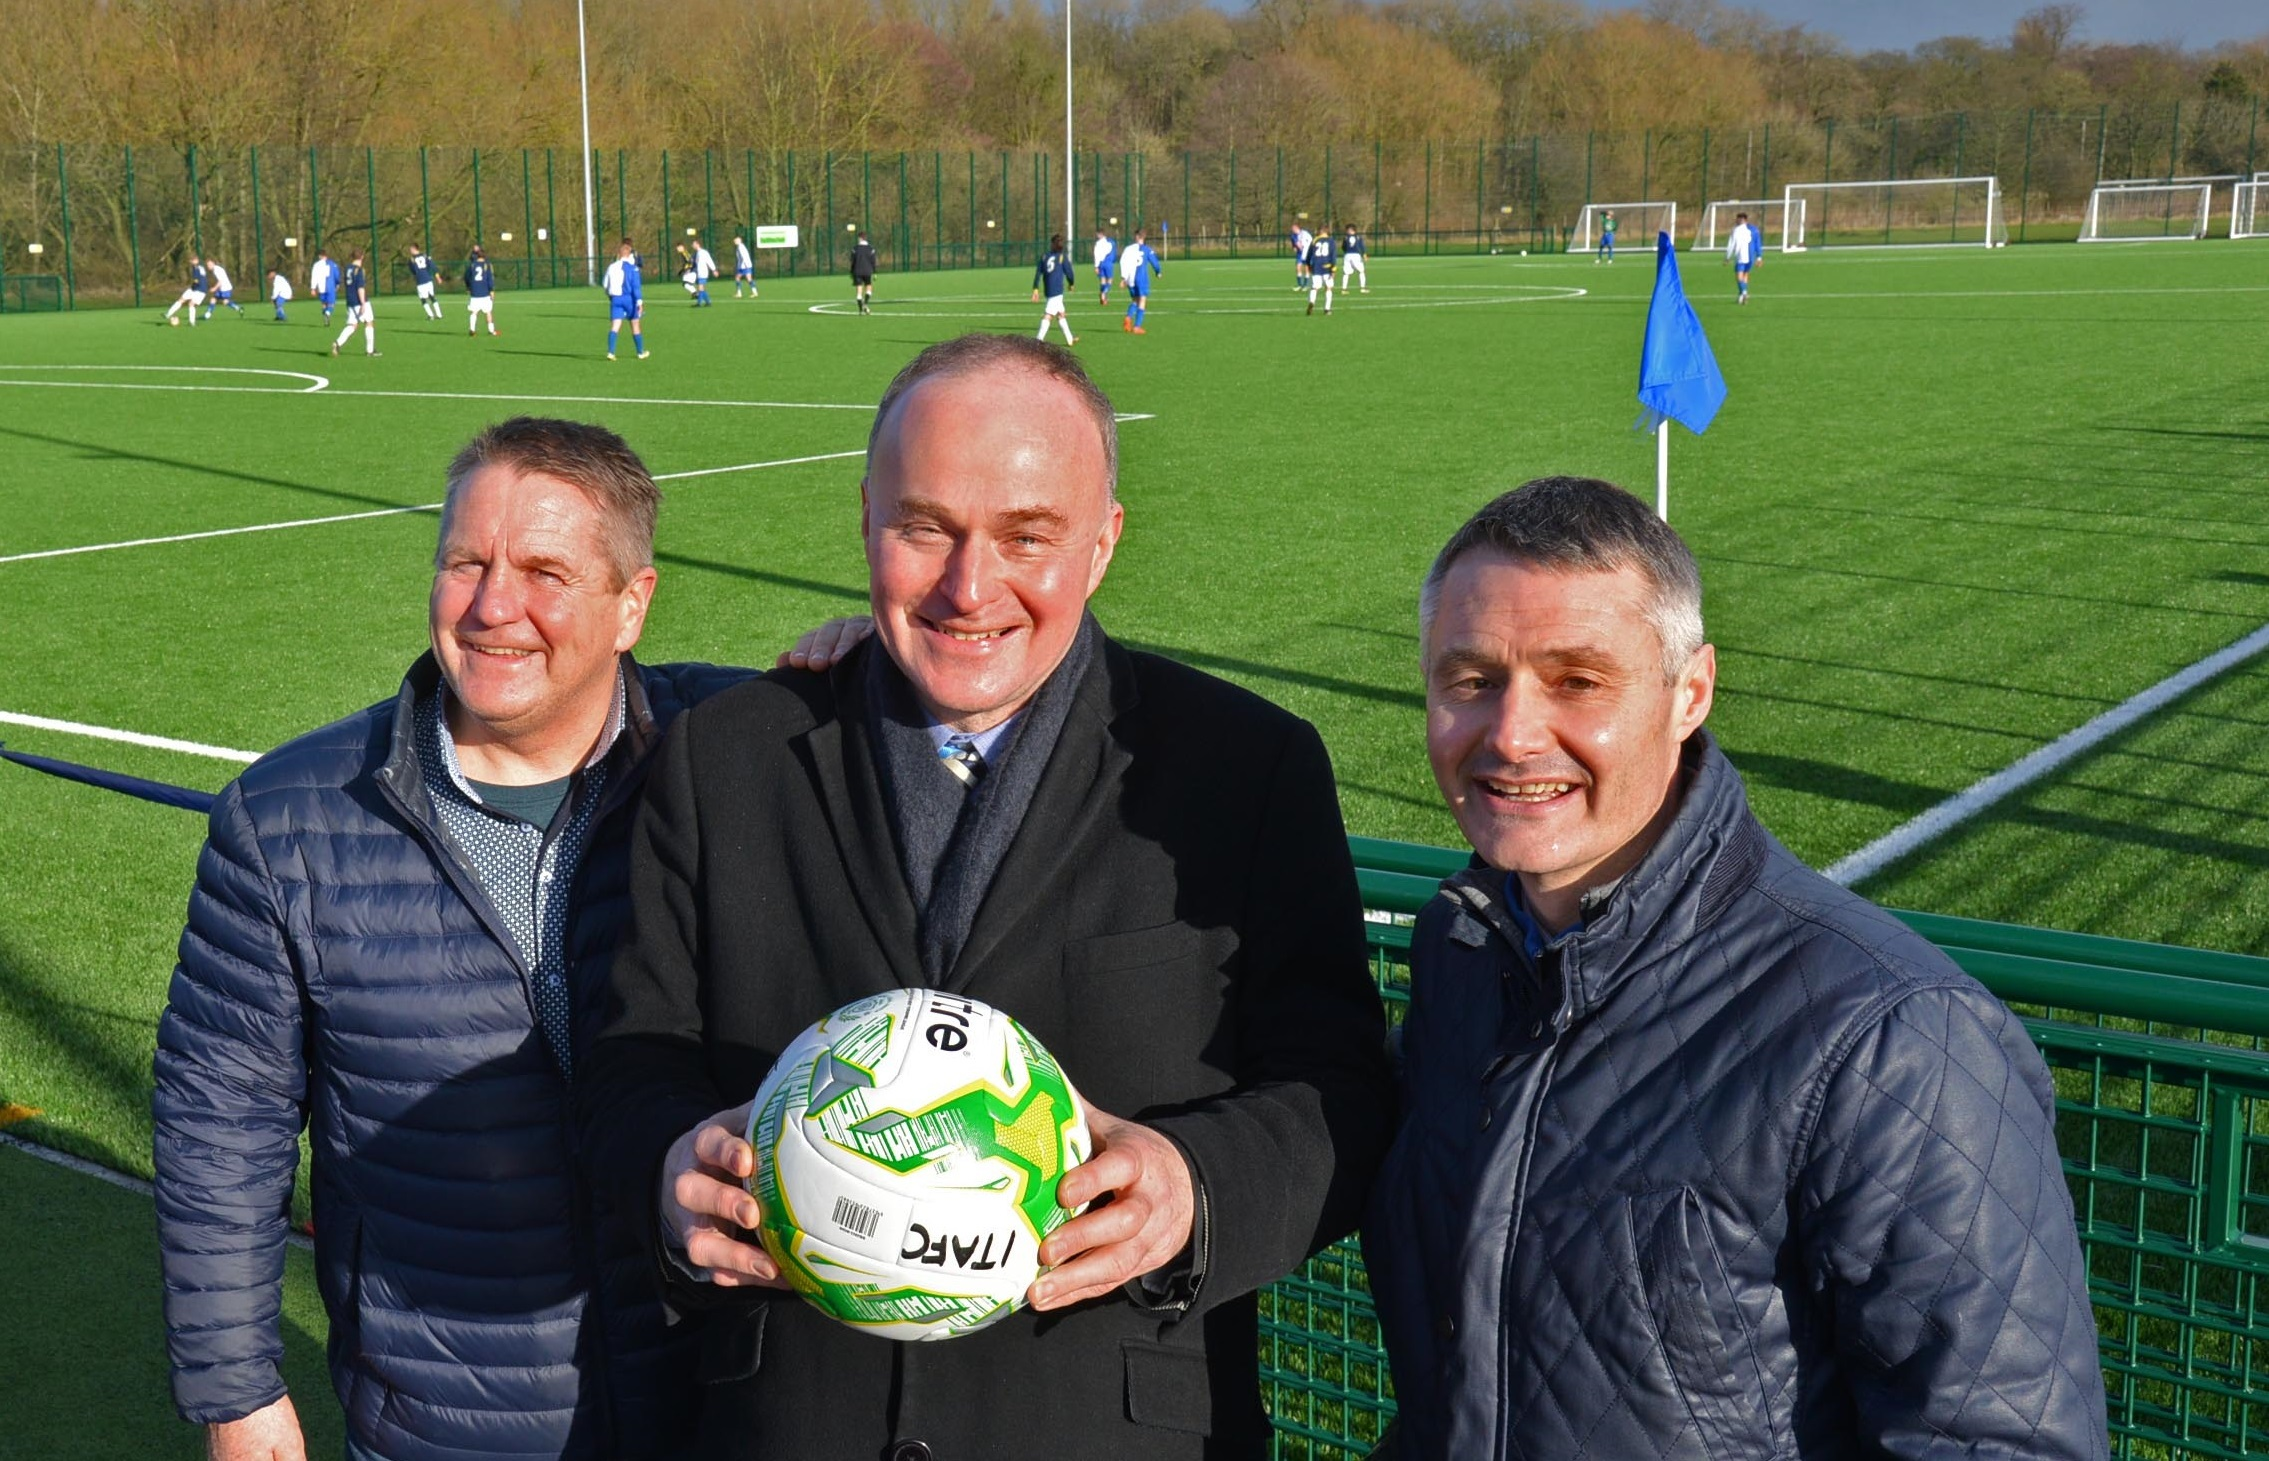 John Grogan, MP for Keighley and Ilkley, with IlkleyFC's club president Richard Giles and former Bradford City player John Hendrie.